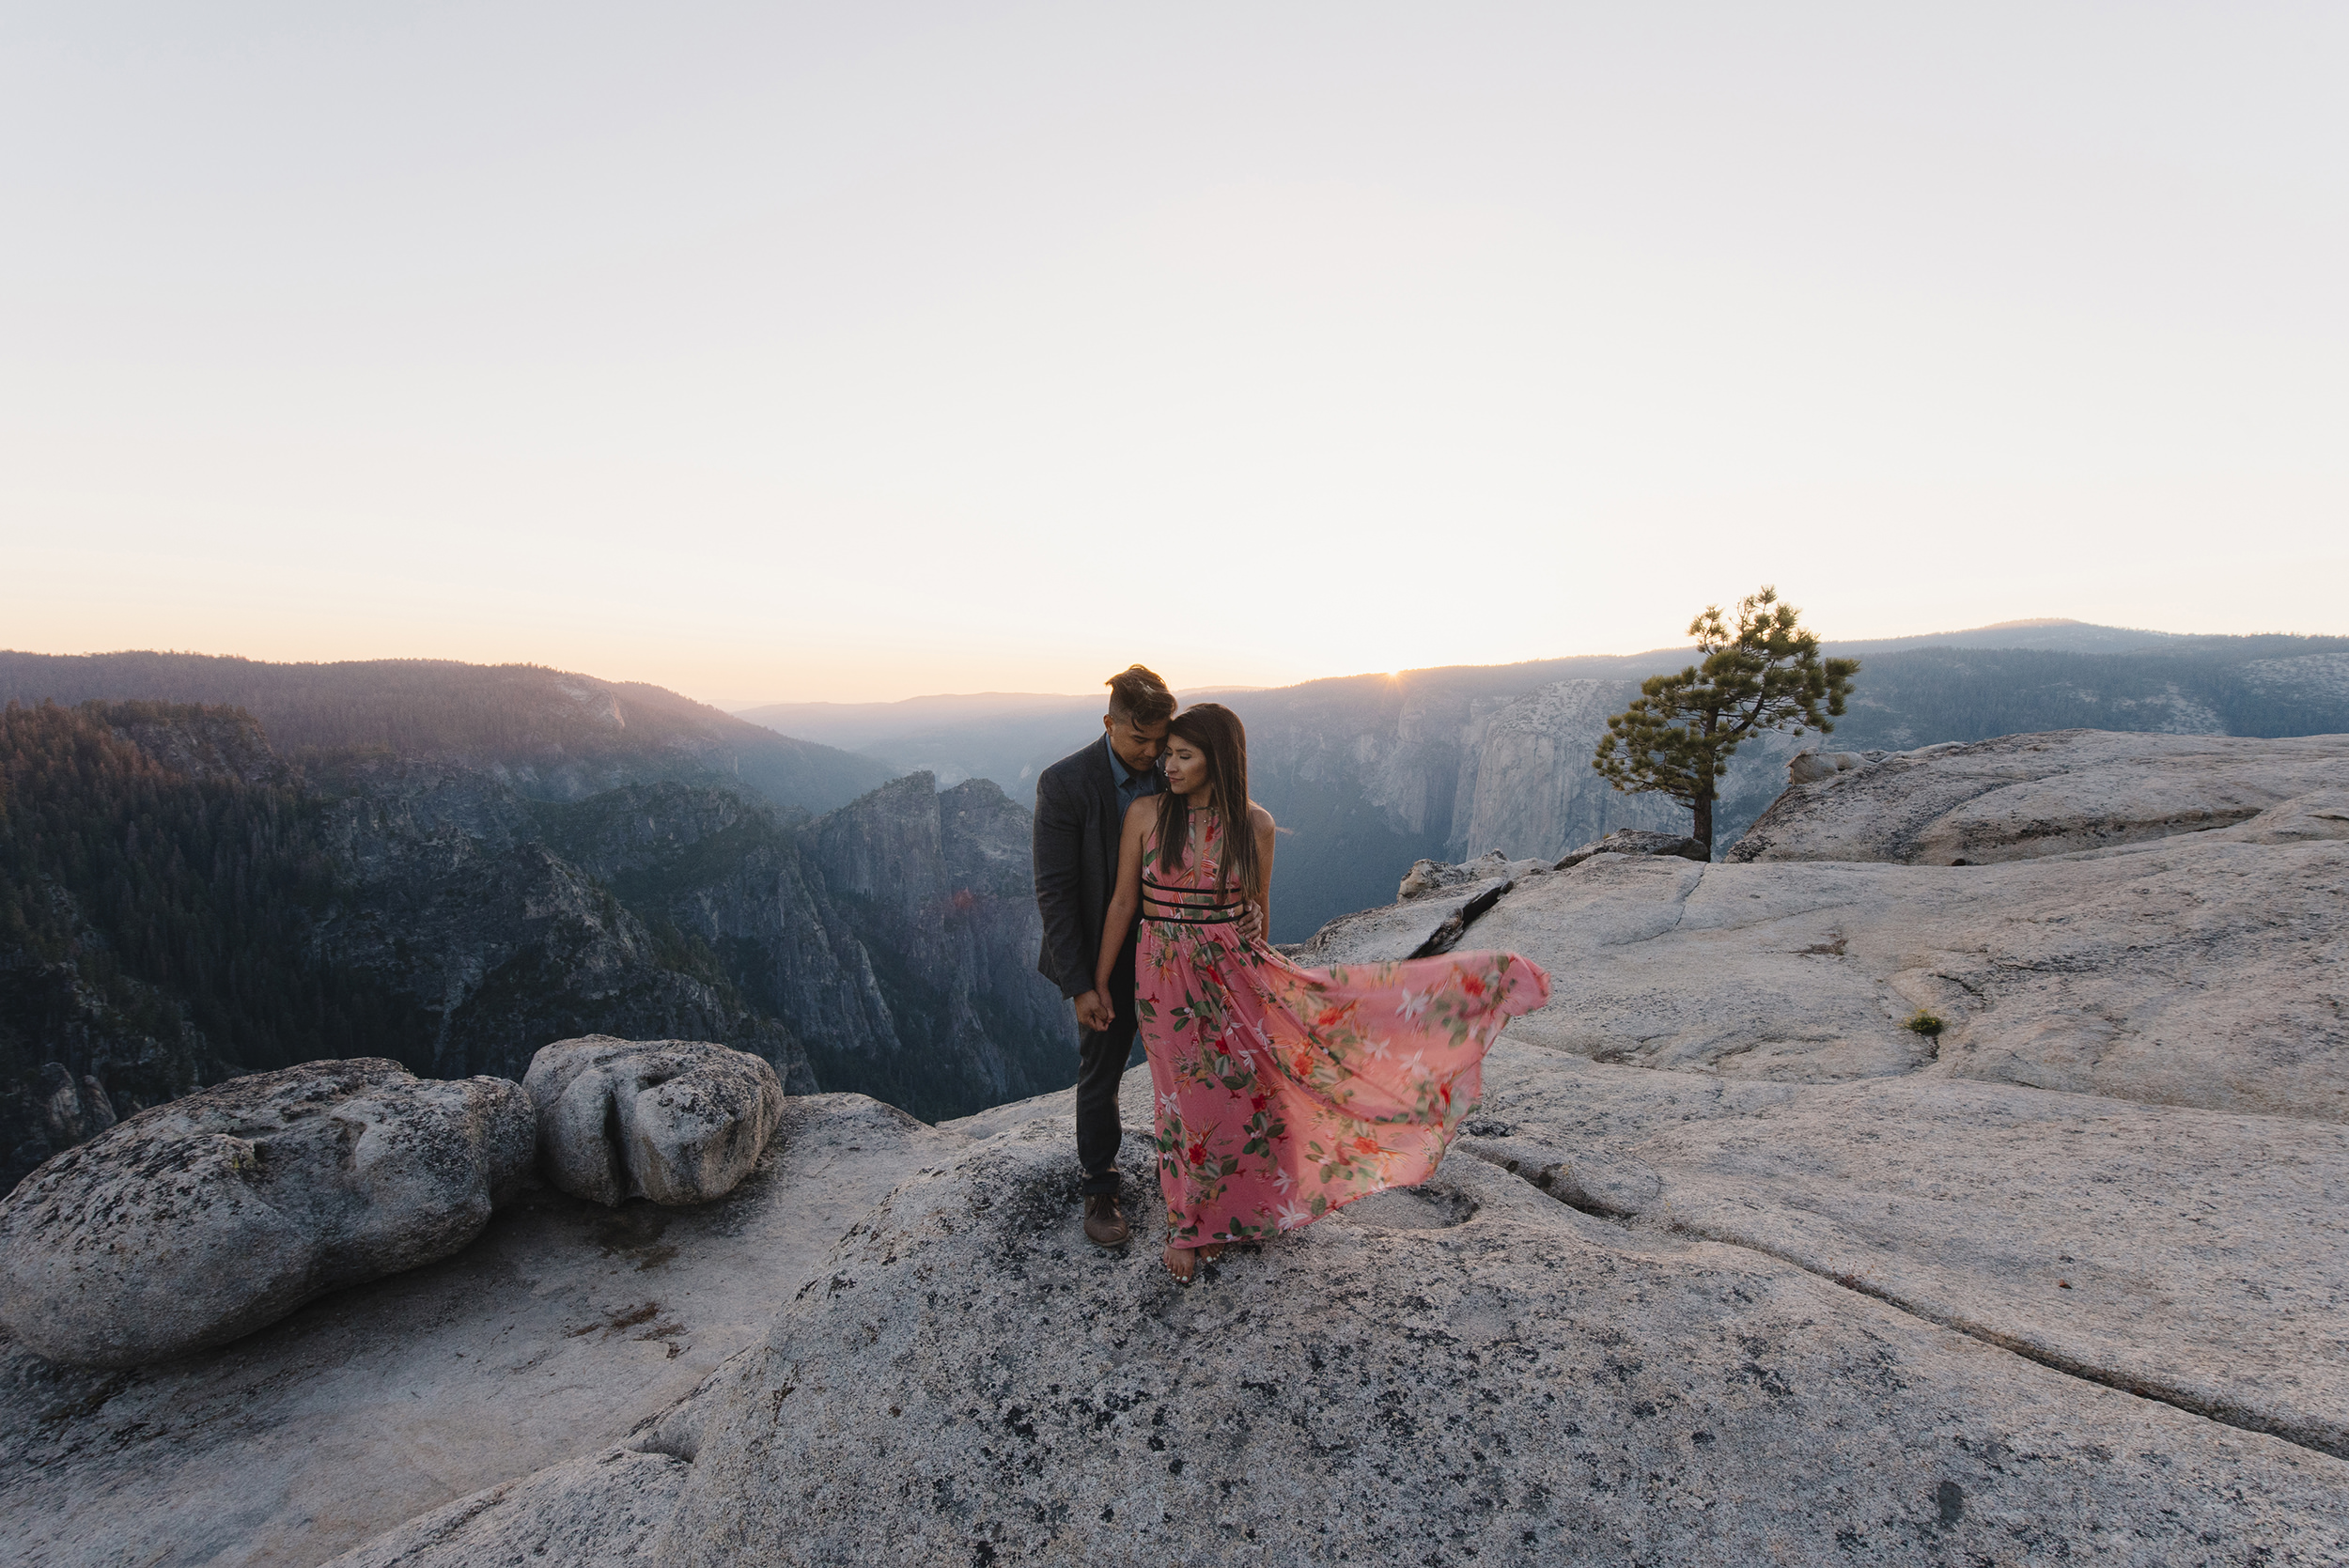 Bride to be's dress blows in the wind at sunset during their Taft Point Adventure photography session by Yosemite Wedding Photographers Colby and Jess colbyandjess.com